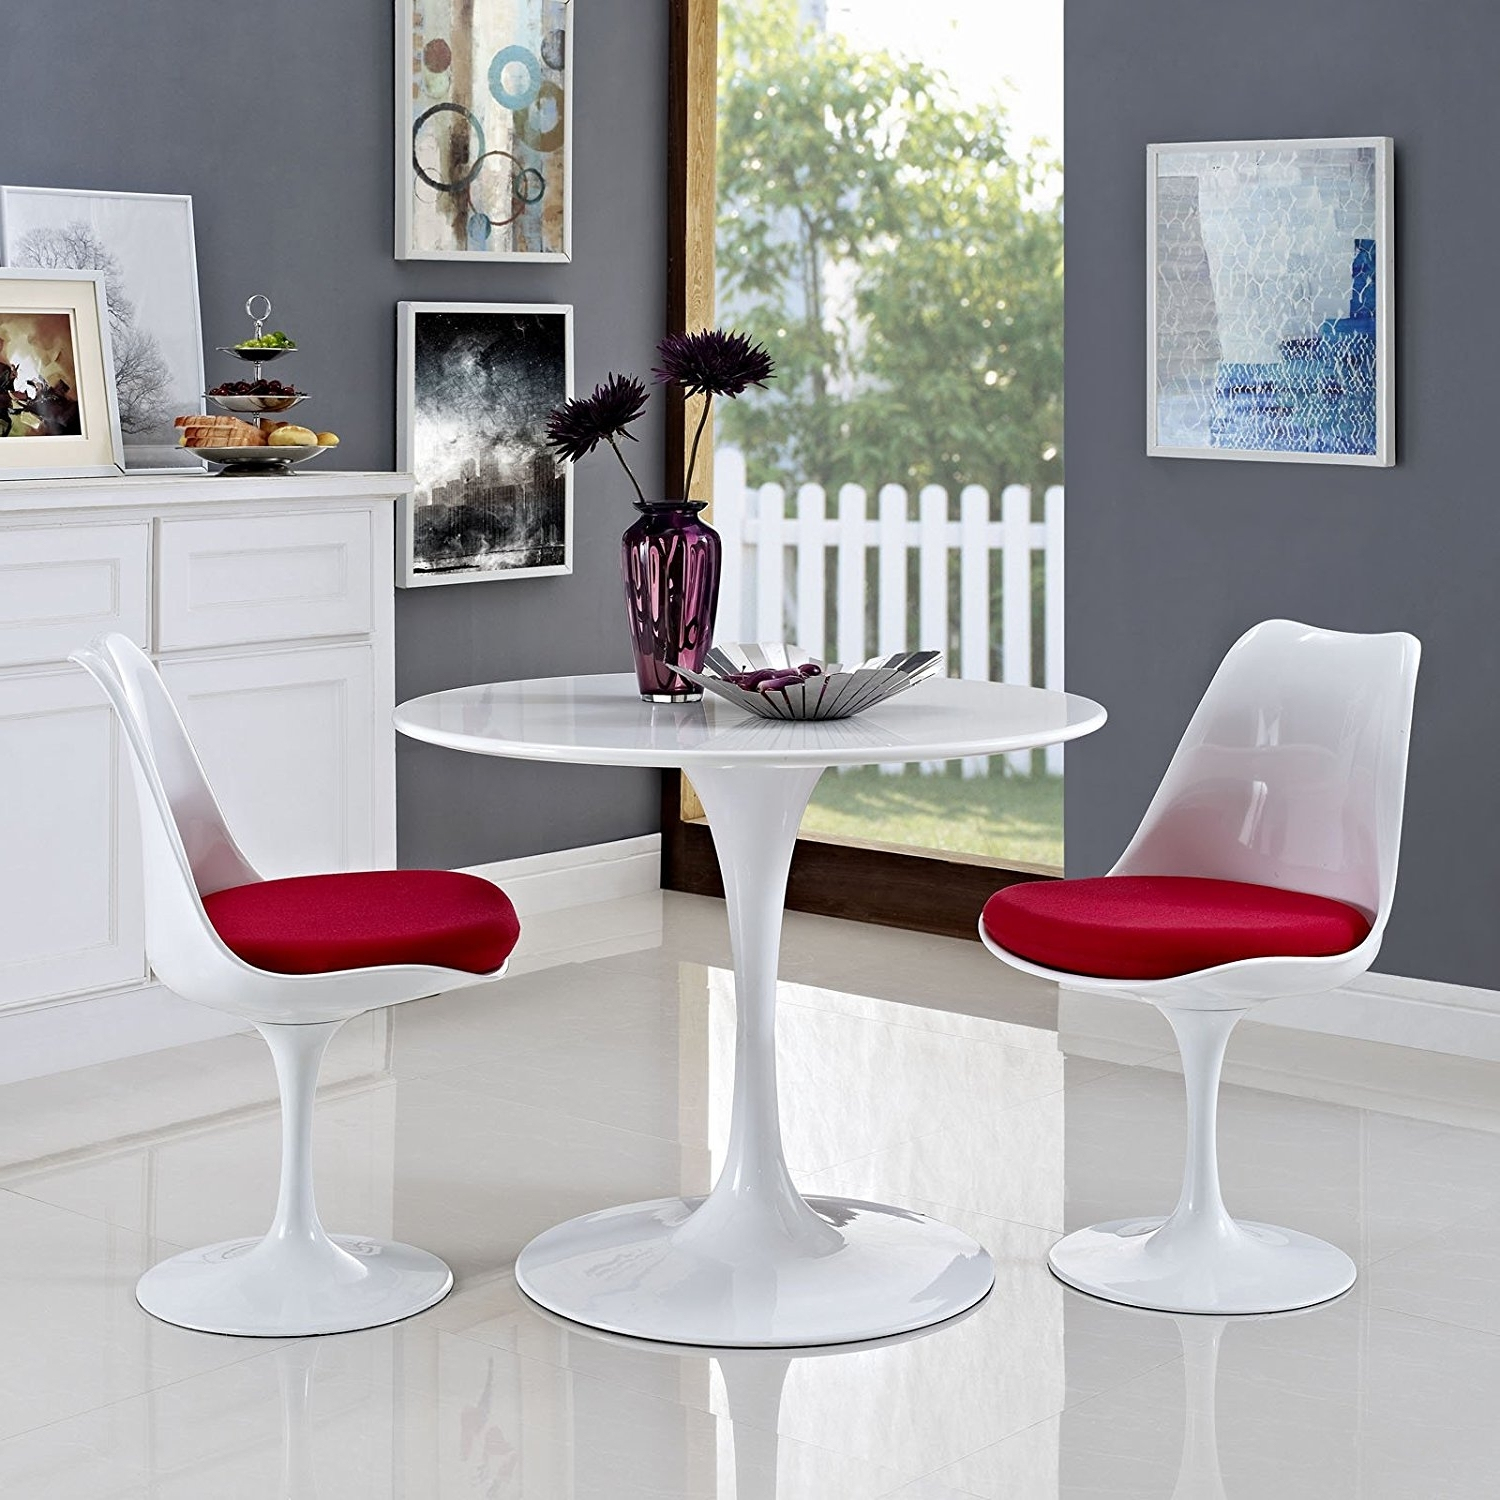 Most Popular Small Round White Dining Tables In Twenty Dining Tables That Work Great In Small Spaces – Living In A (View 10 of 25)